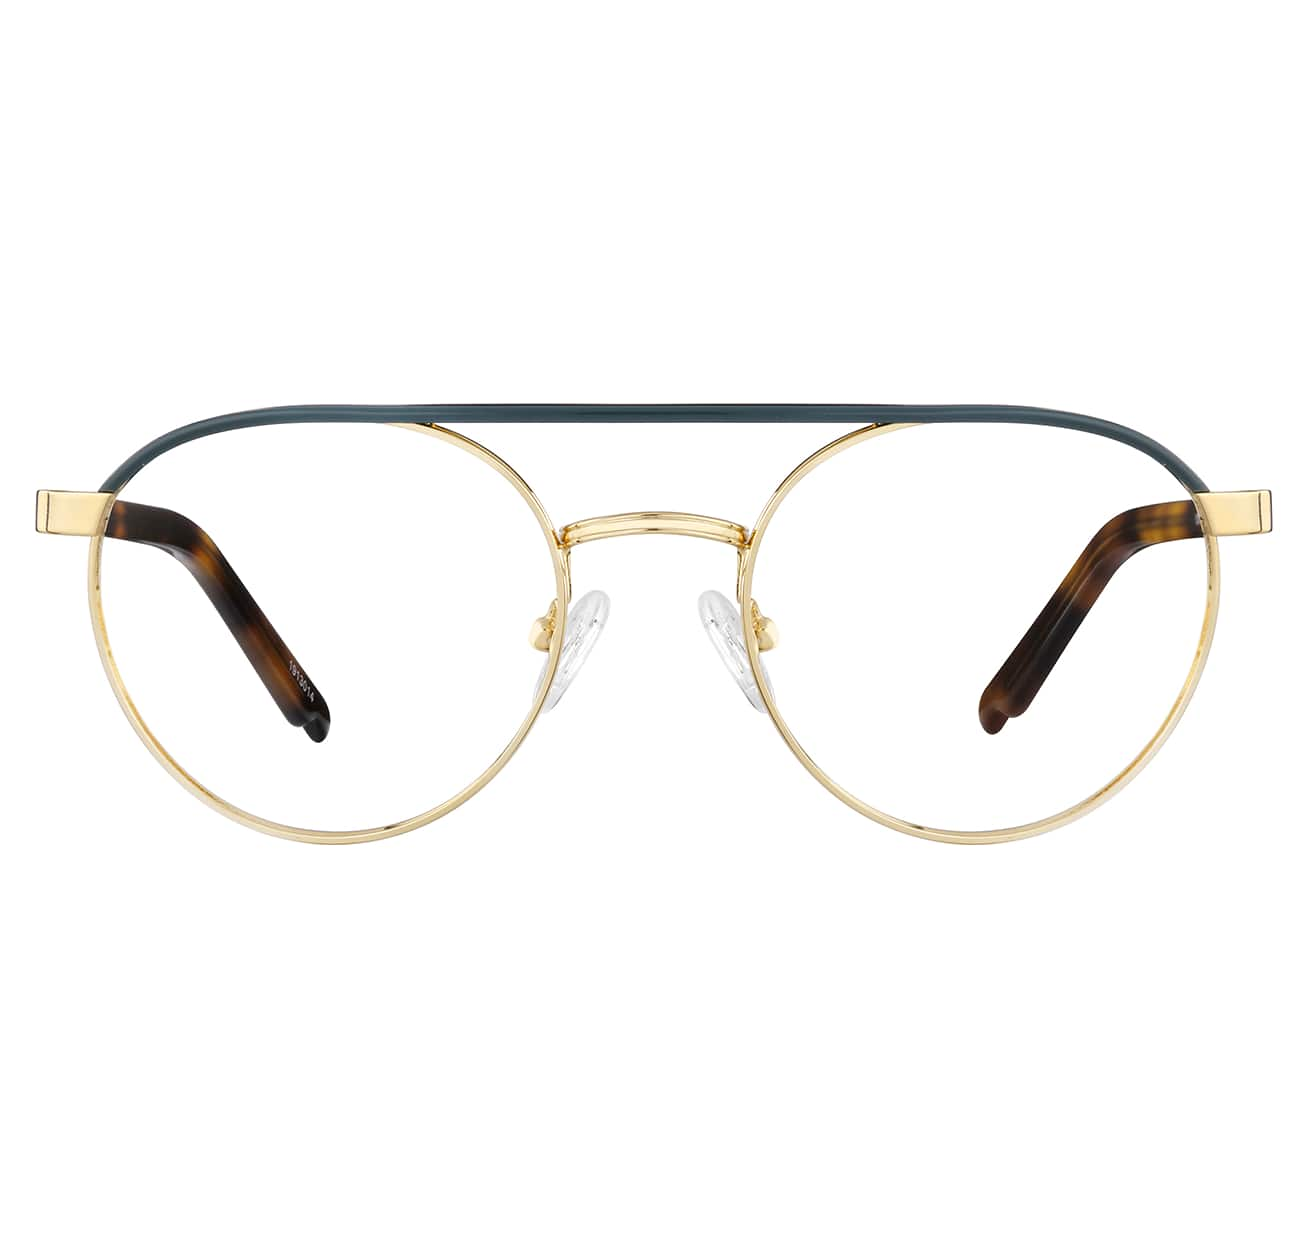 Image of Zenni gold aviator glasses #1913014 I am brave